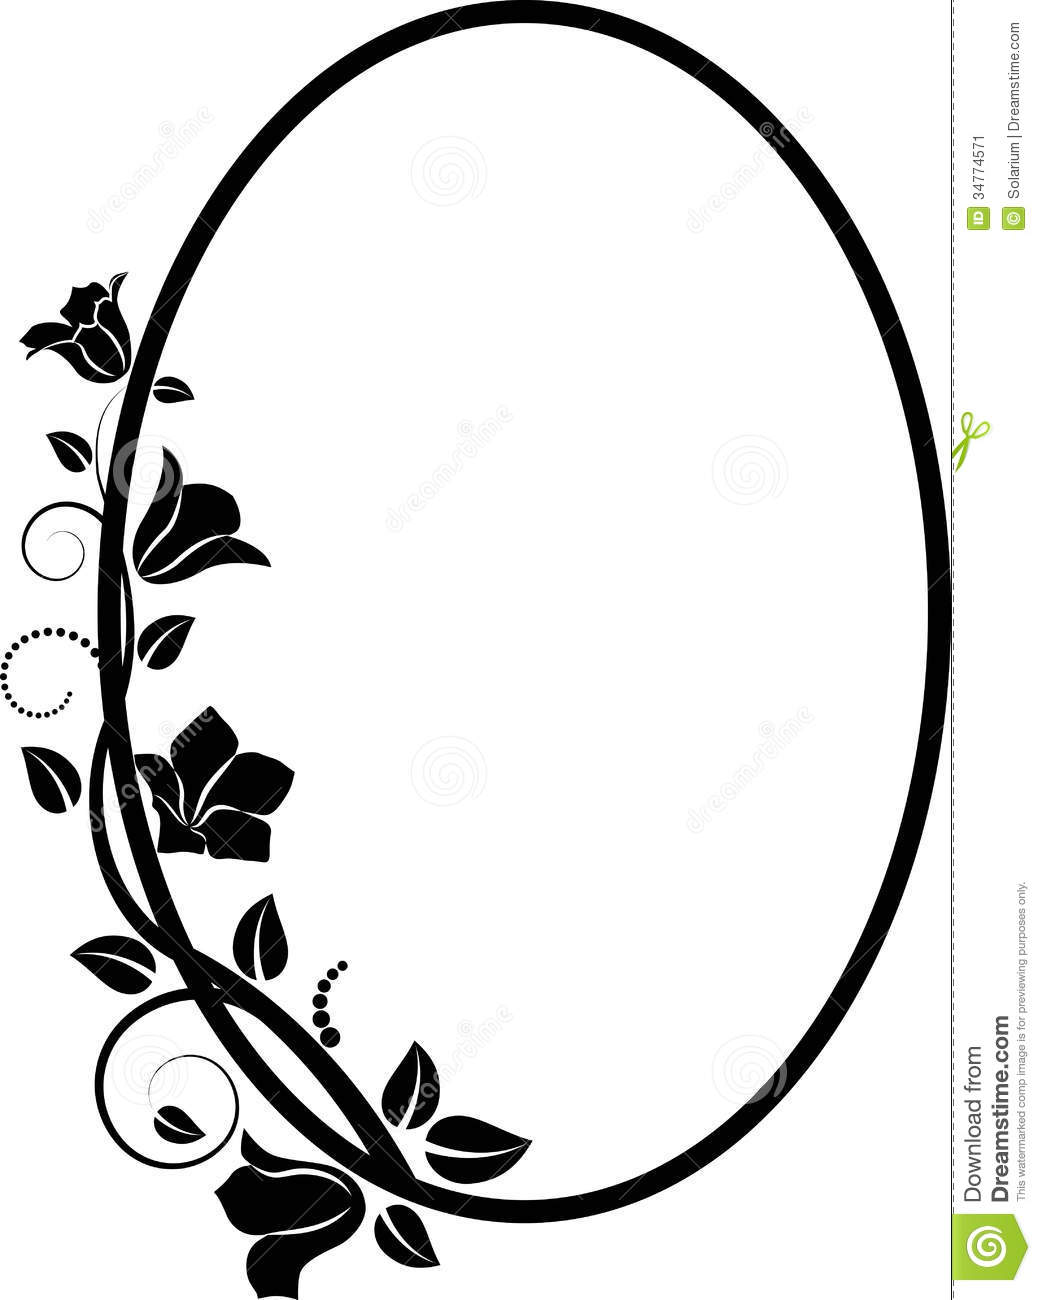 Free Flower Frame Clipart Download Free Clip Art Free Clip Art On Clipart Library